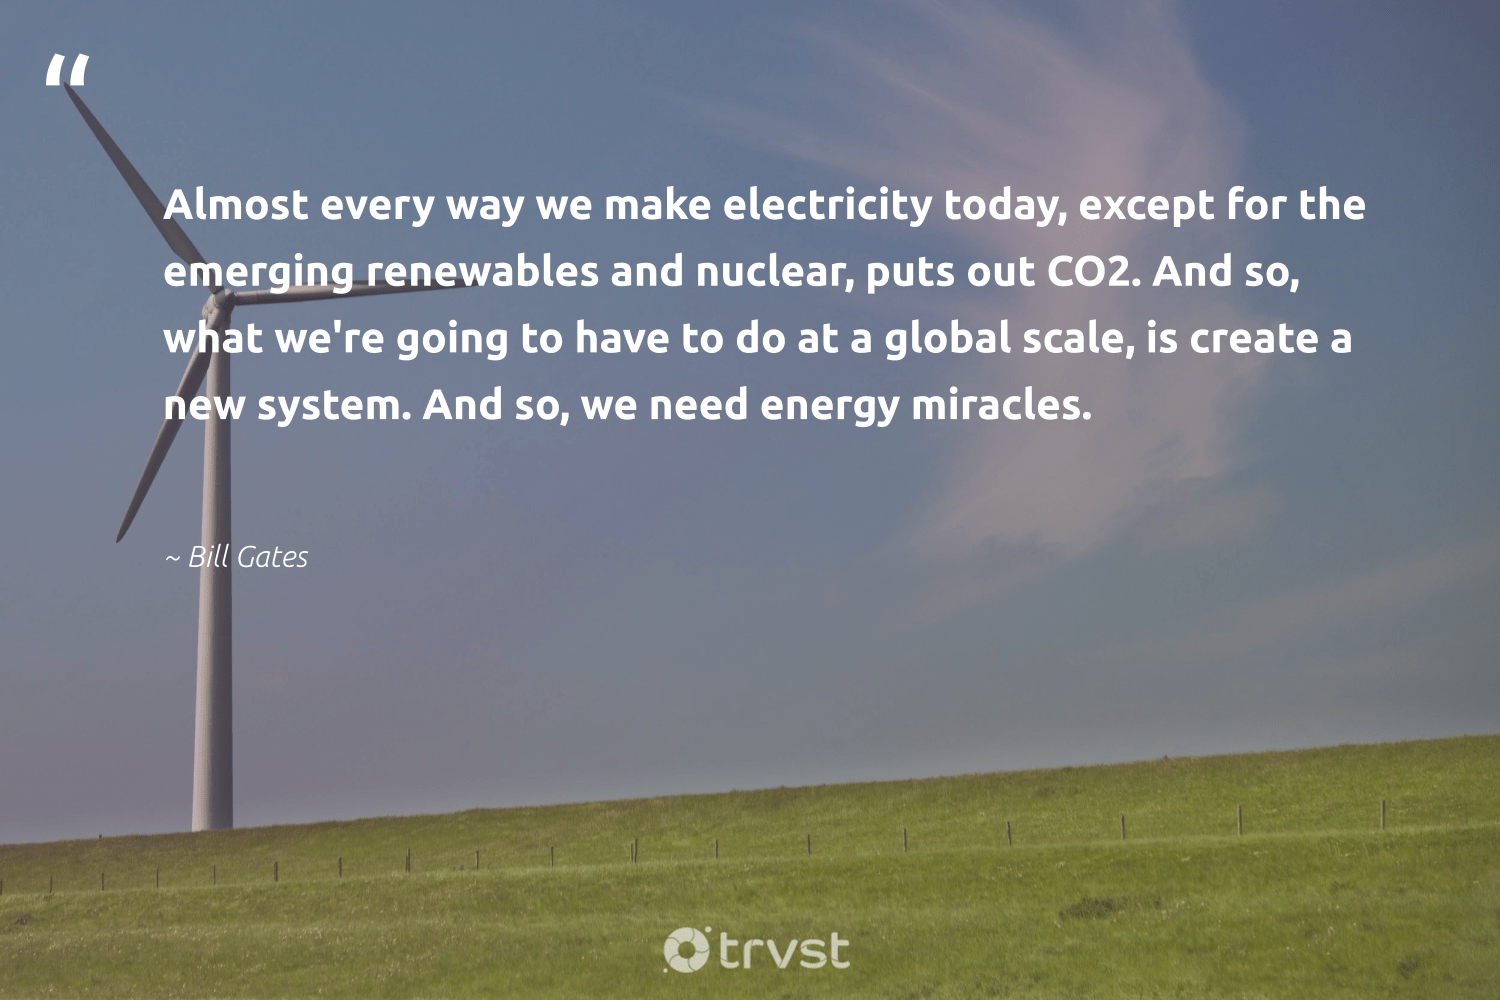 """""""Almost every way we make electricity today, except for the emerging renewables and nuclear, puts out CO2. And so, what we're going to have to do at a global scale, is create a new system. And so, we need energy miracles.""""  - Bill Gates #trvst #quotes #renewableenergy #energy #renewables #co2 #100percentclean #cop21 #sustainable #collectiveaction #affordable #green"""